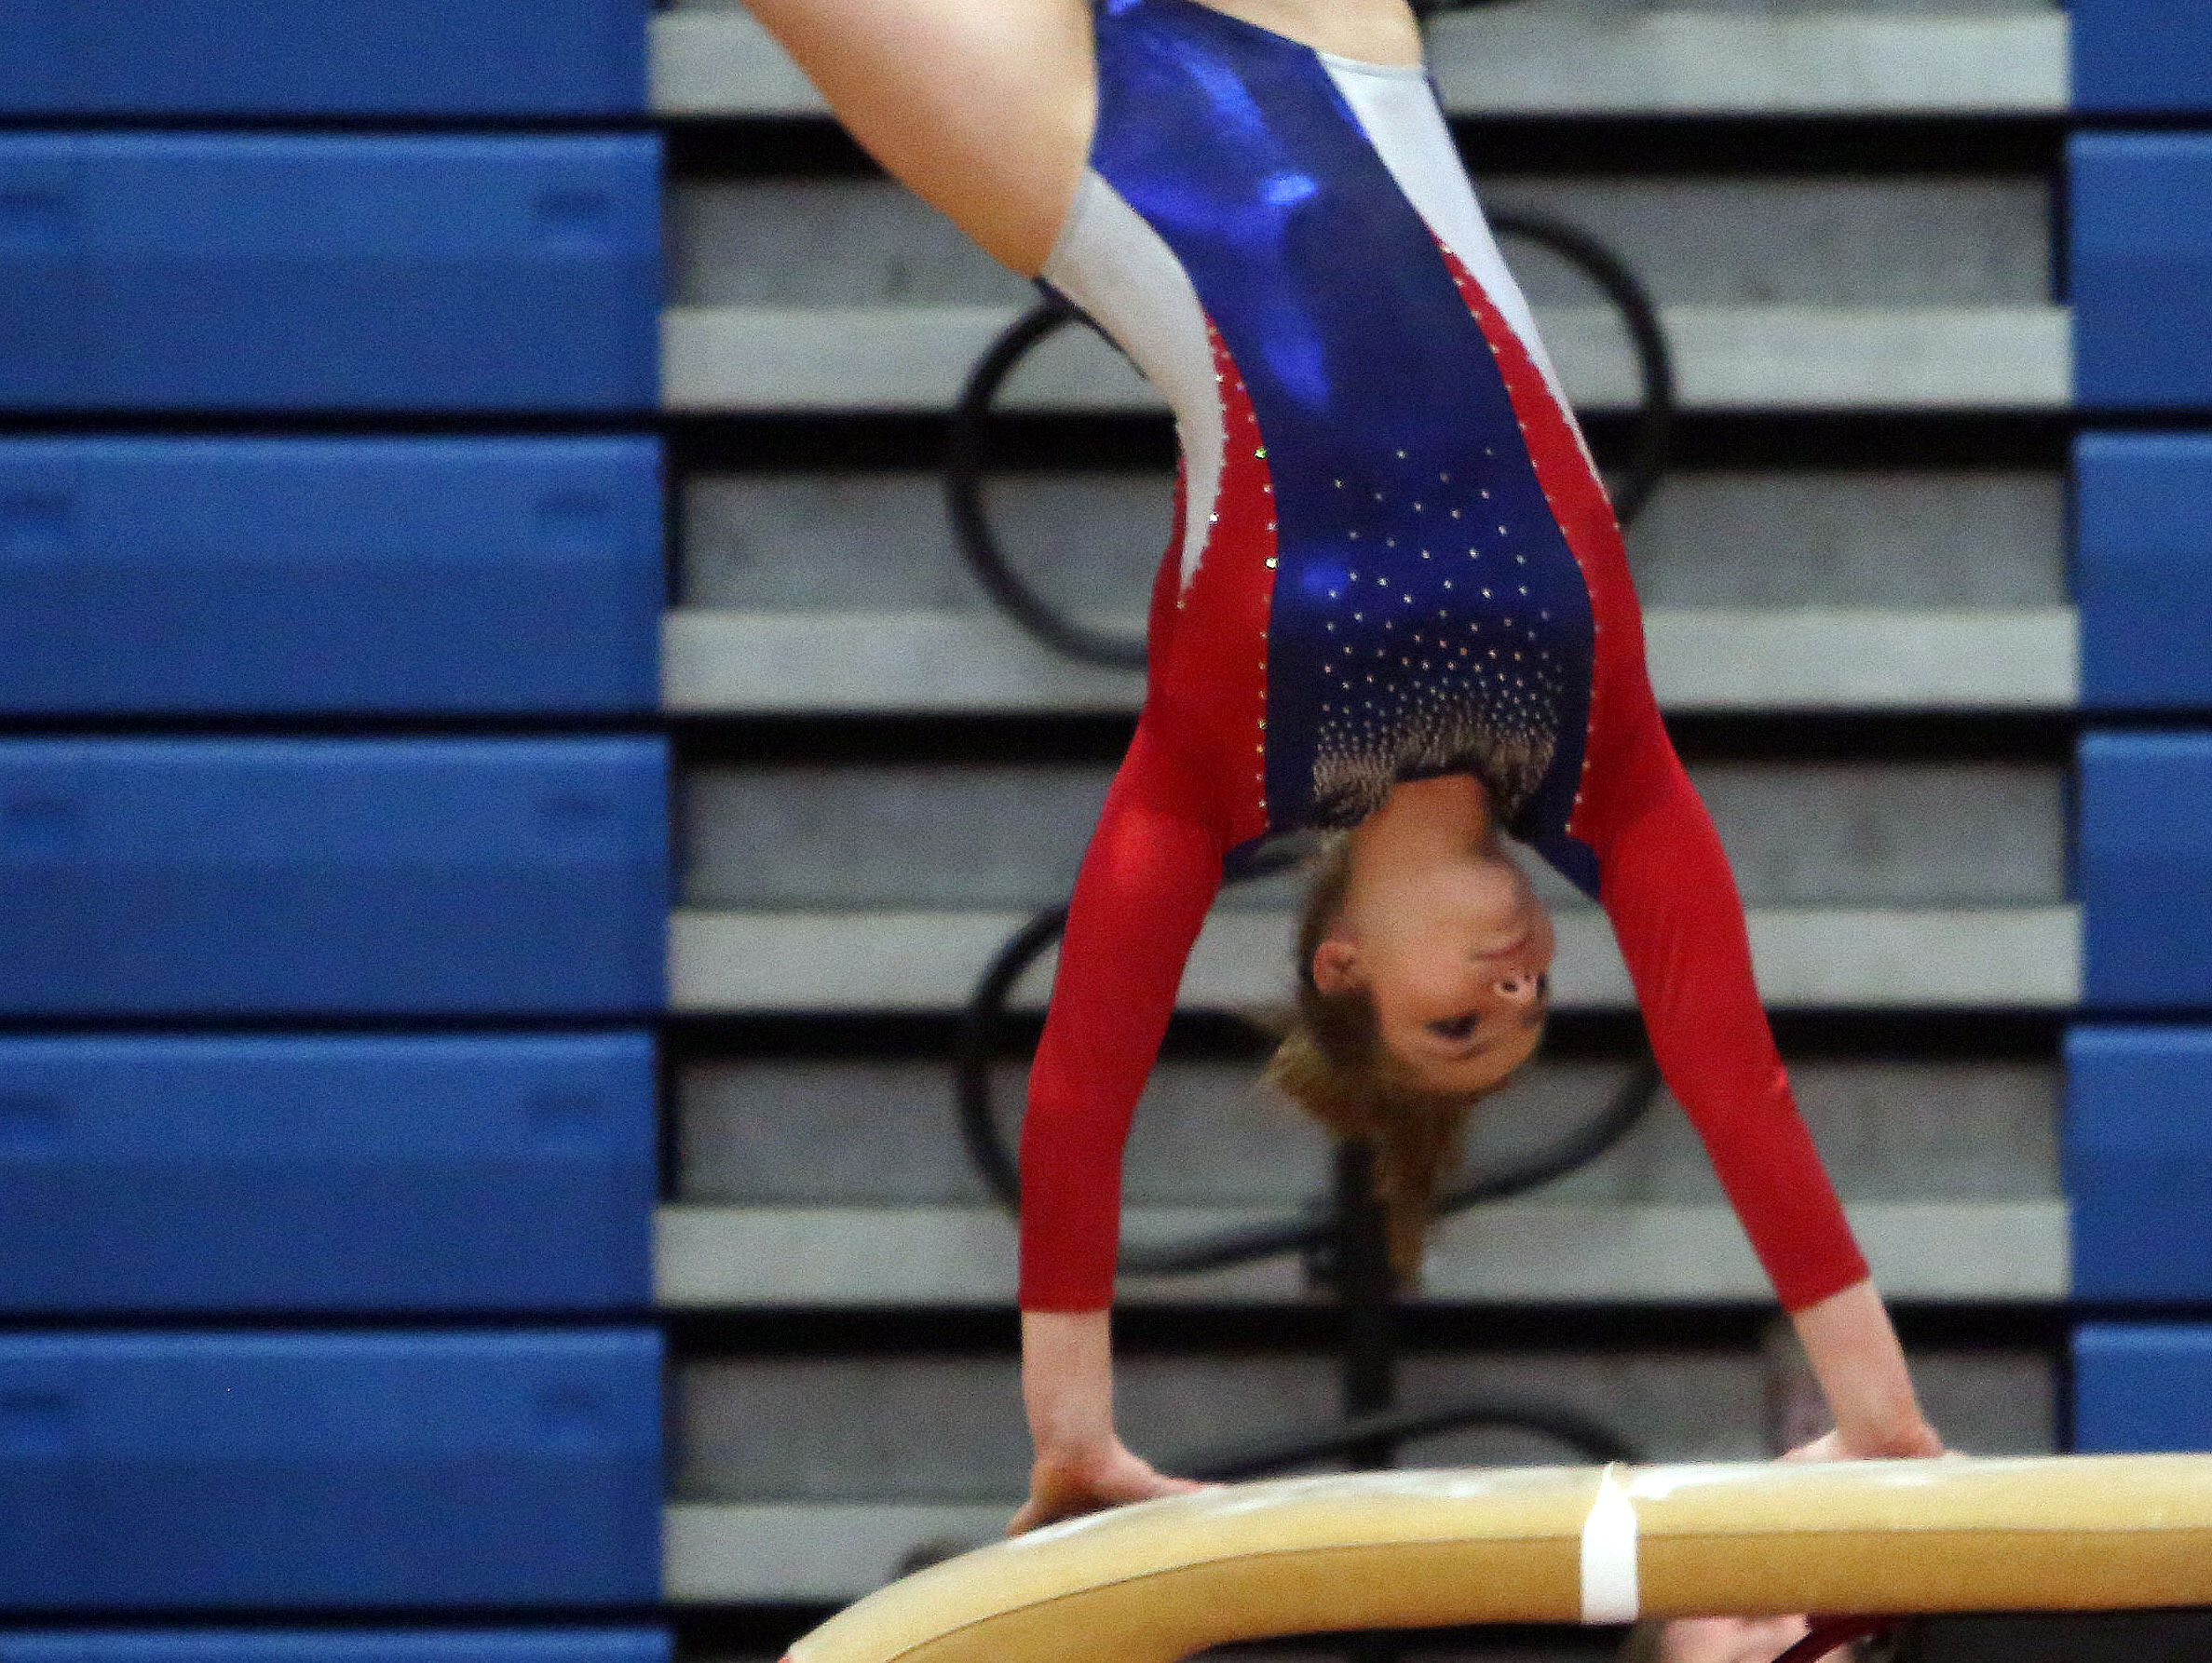 Wappingers' Olivia Frederick competes in the vault during the Section 1 gymnastics championship at Carmel High School on Tuesday.